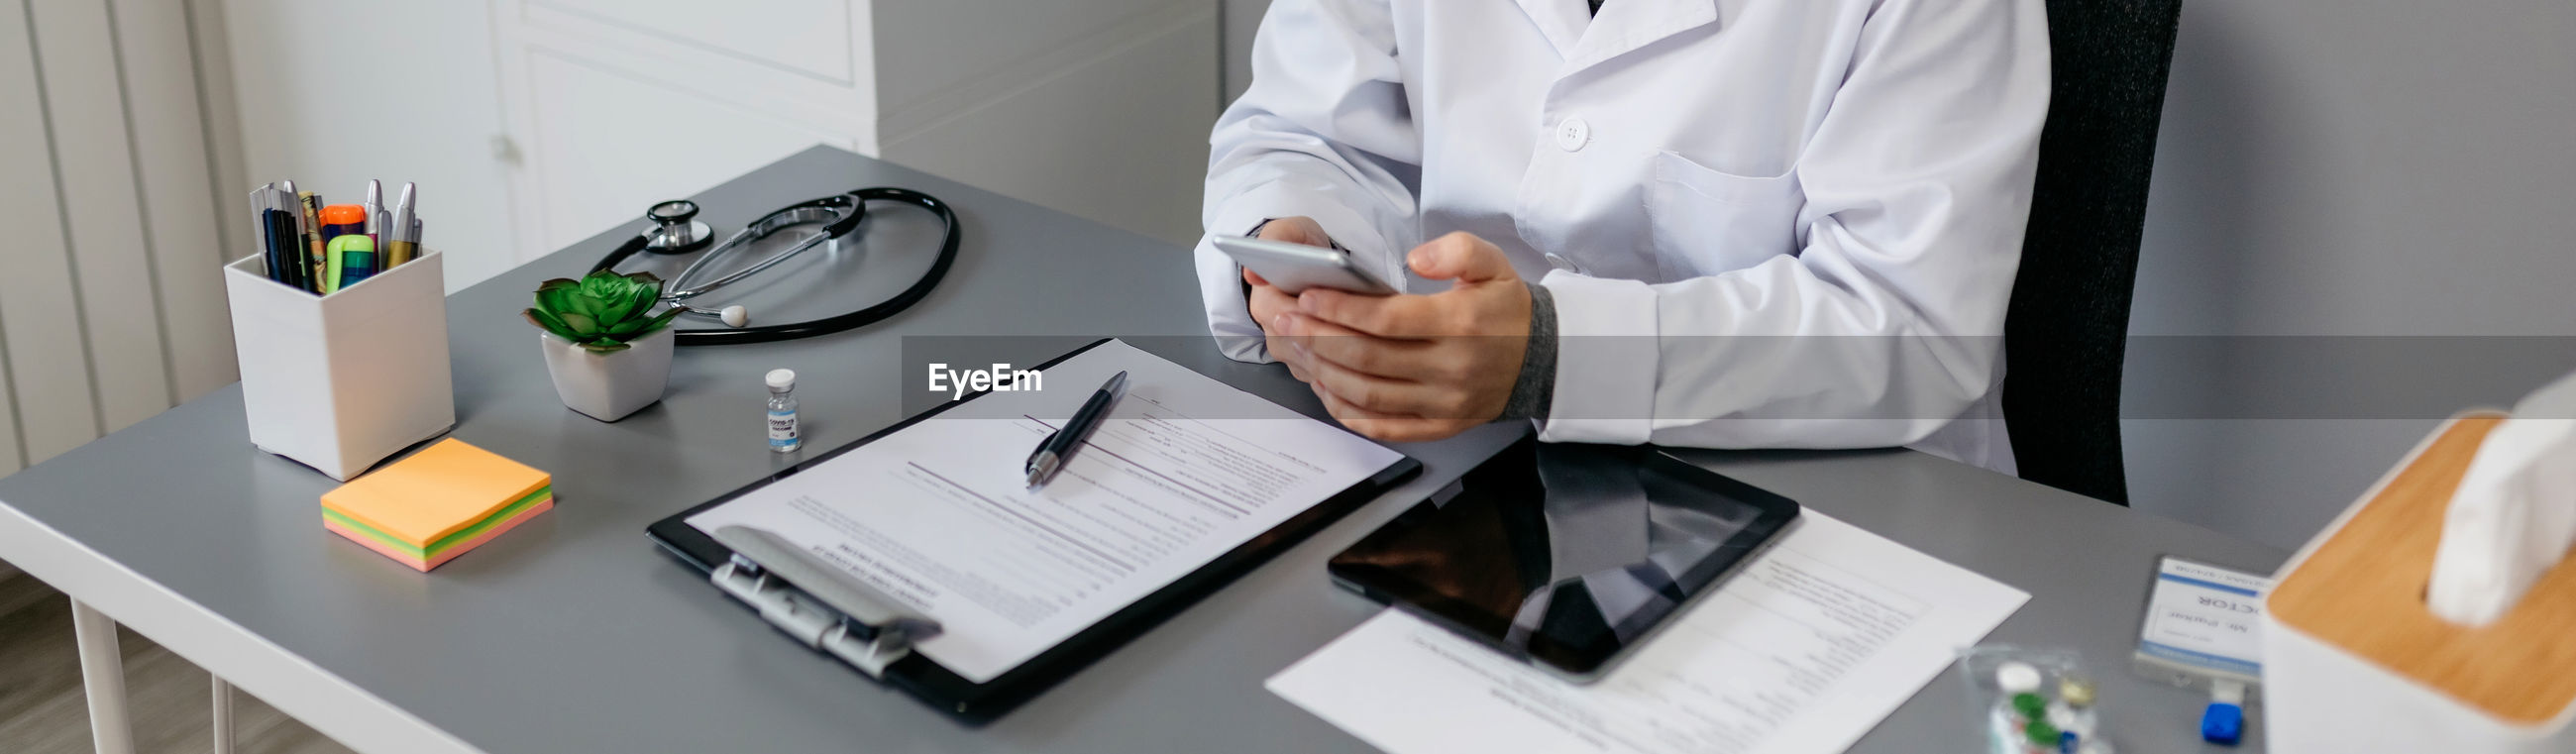 Midsection of doctor using mobile phone at desk